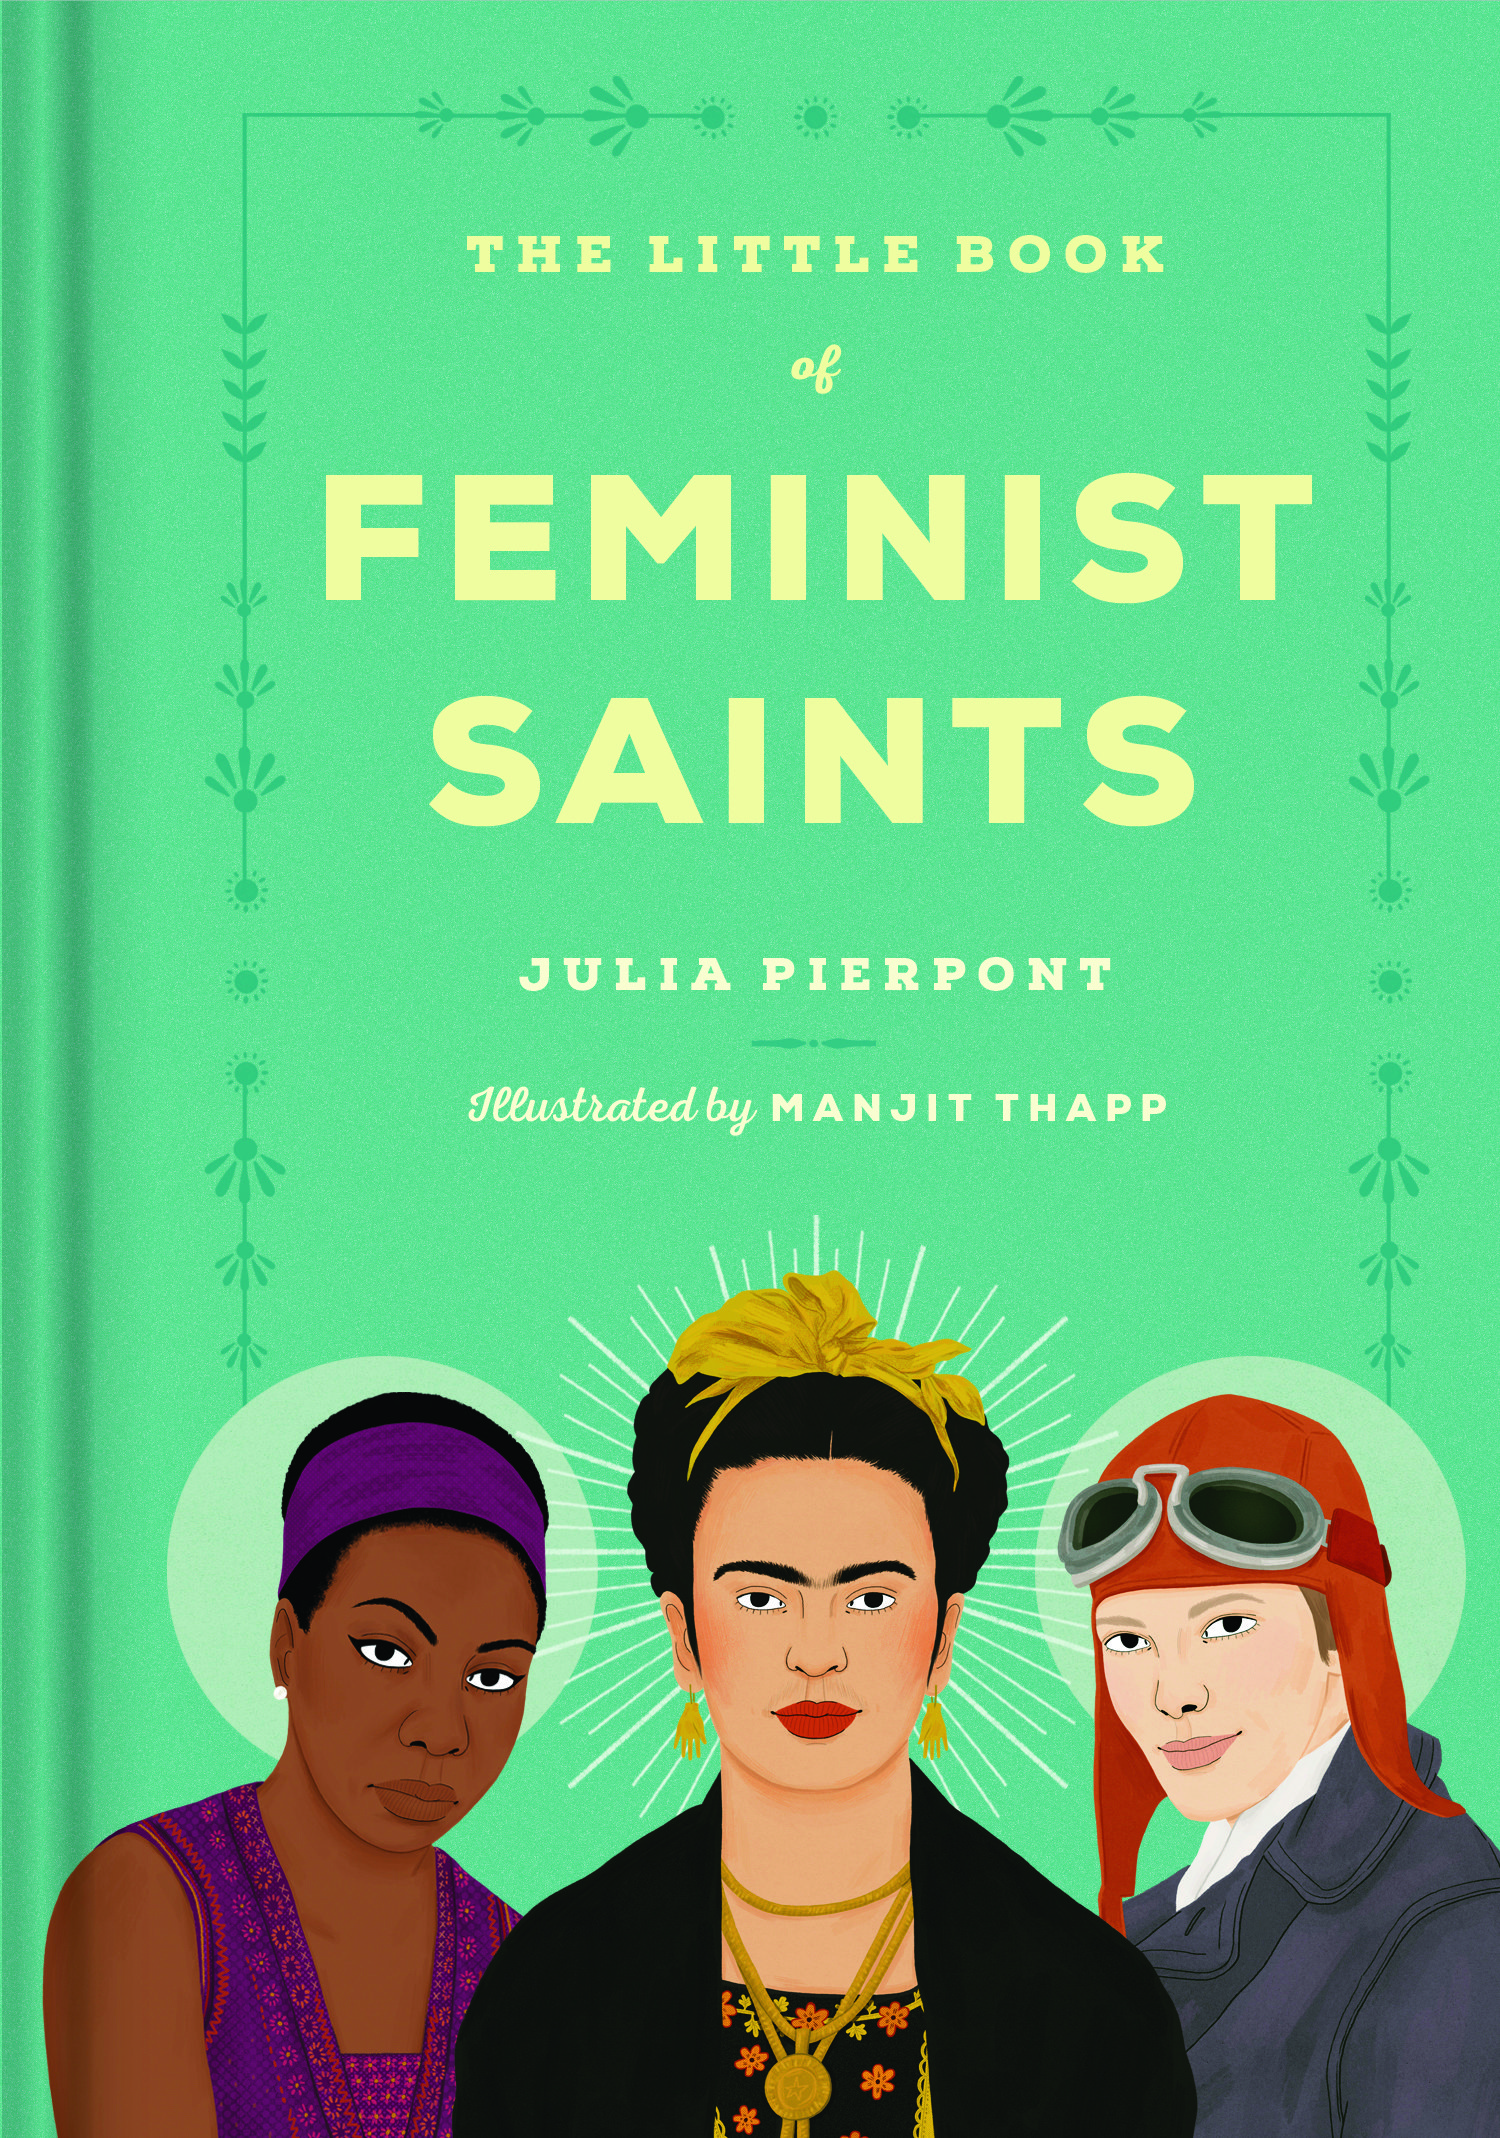 Book Launch: The Little Book of Feminist Saints by Julia Pierpont, Illustrated by Manjitt Thapp — in conversation w/ Julie Buntin